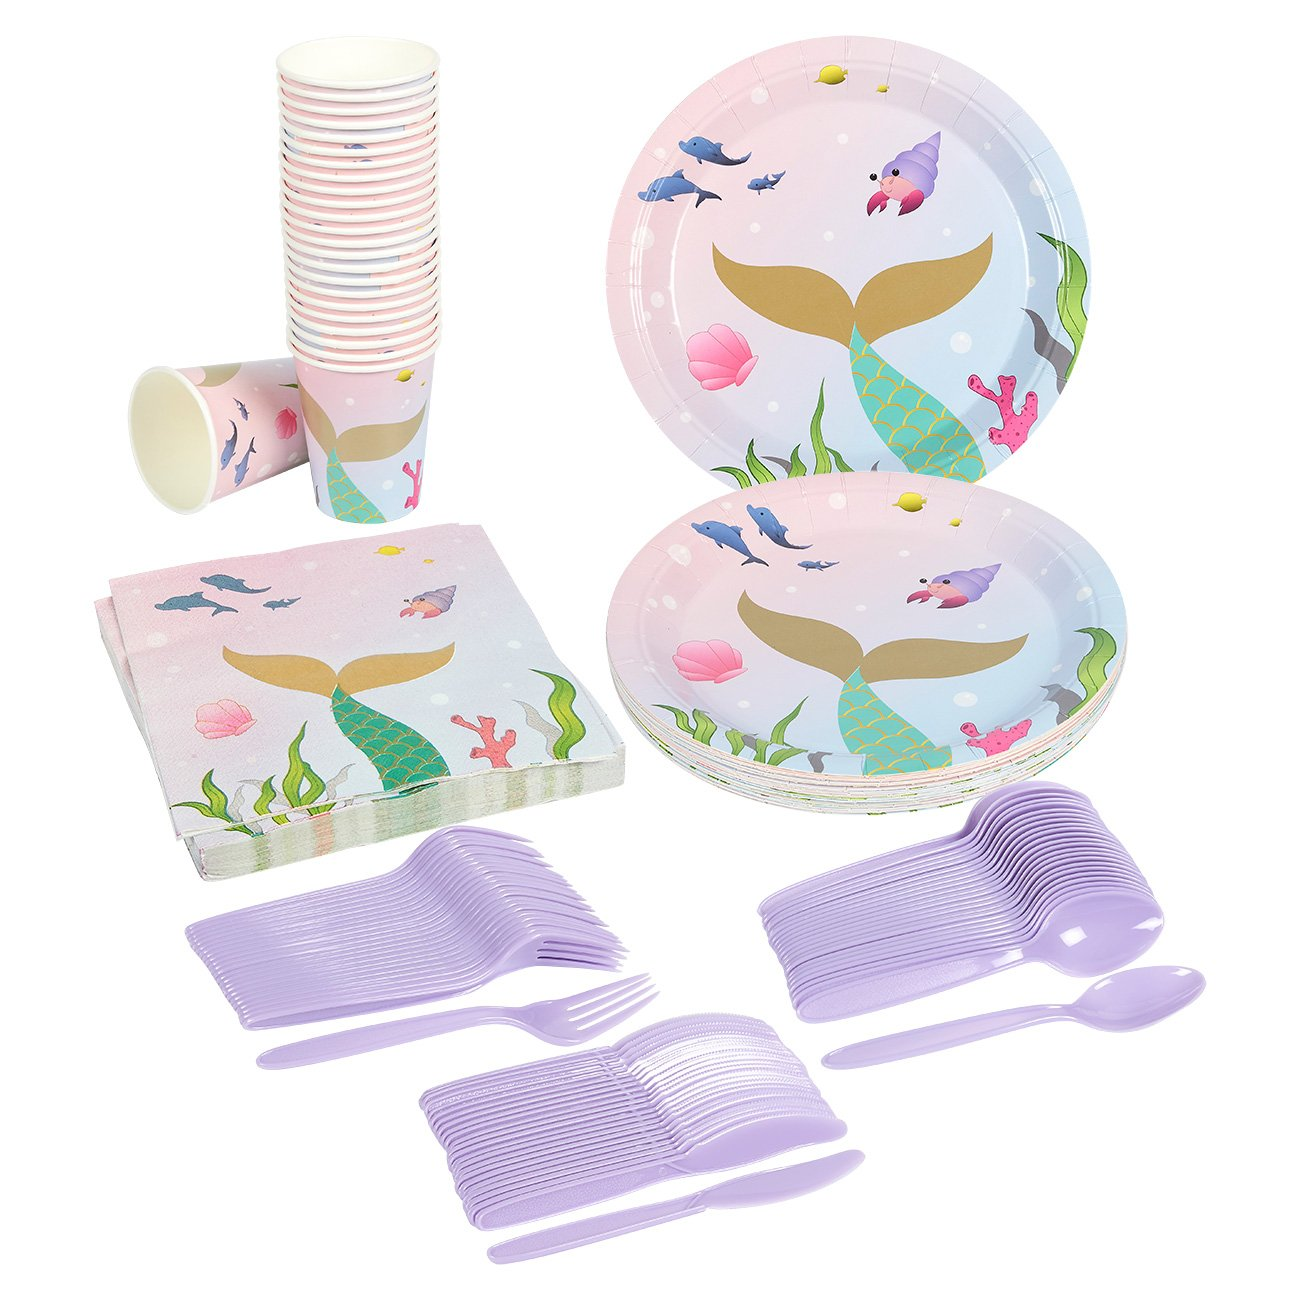 Juvale Mermaid Party Supplies – Serves 24 – Includes Plates, Knives, Spoons, Forks, Cups and Napkins. Perfect Mermaid Birthday Party Pack for Girls Mermaid Themed Parties. by Juvale